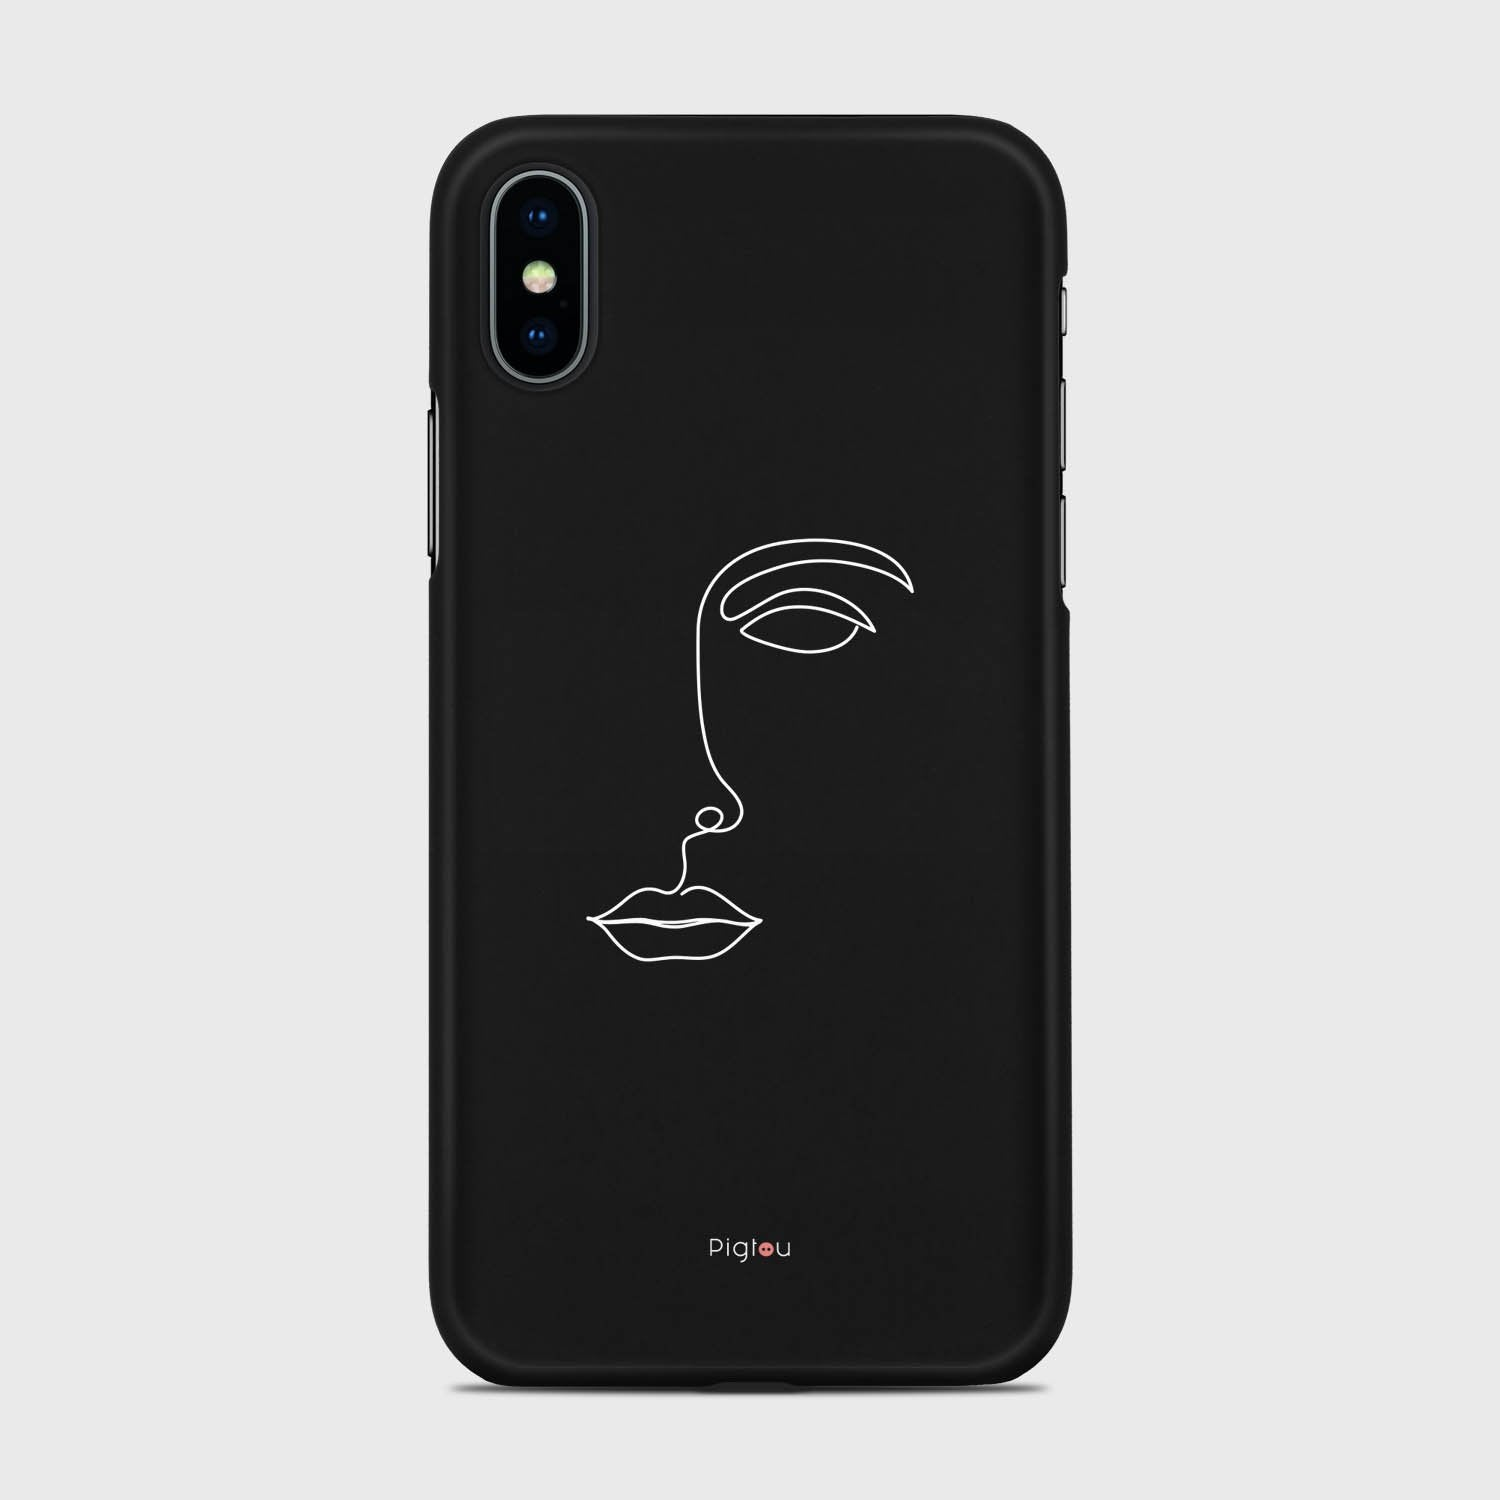 SILHOUETTE FACE iPhone 11 Pro Max cases | Pigtou